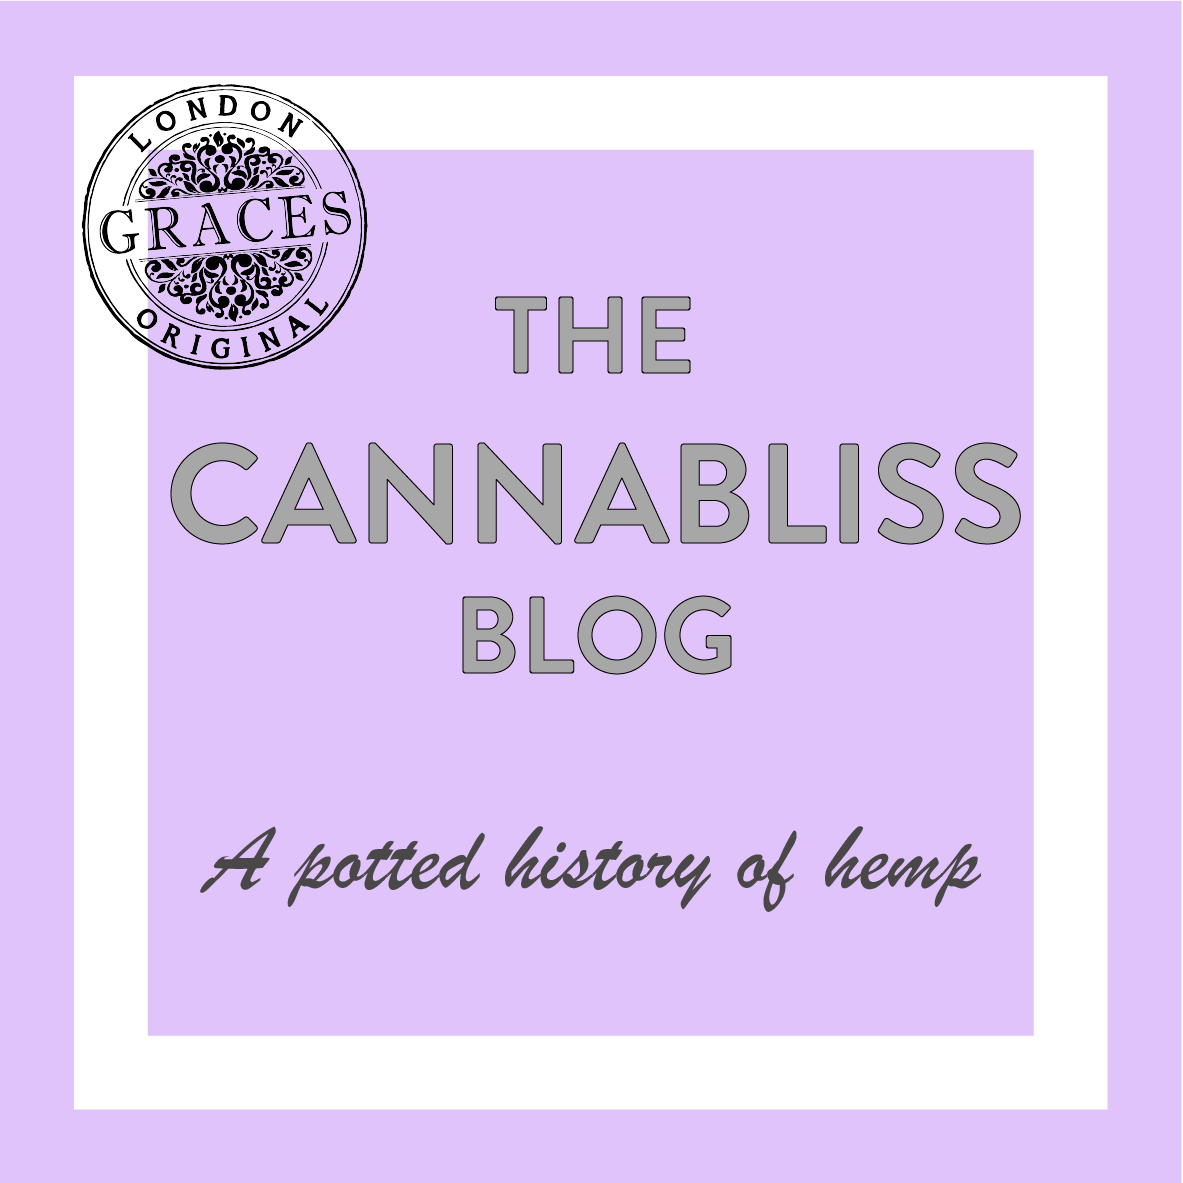 Cannabliss - A potted history of hemp and its many uses.